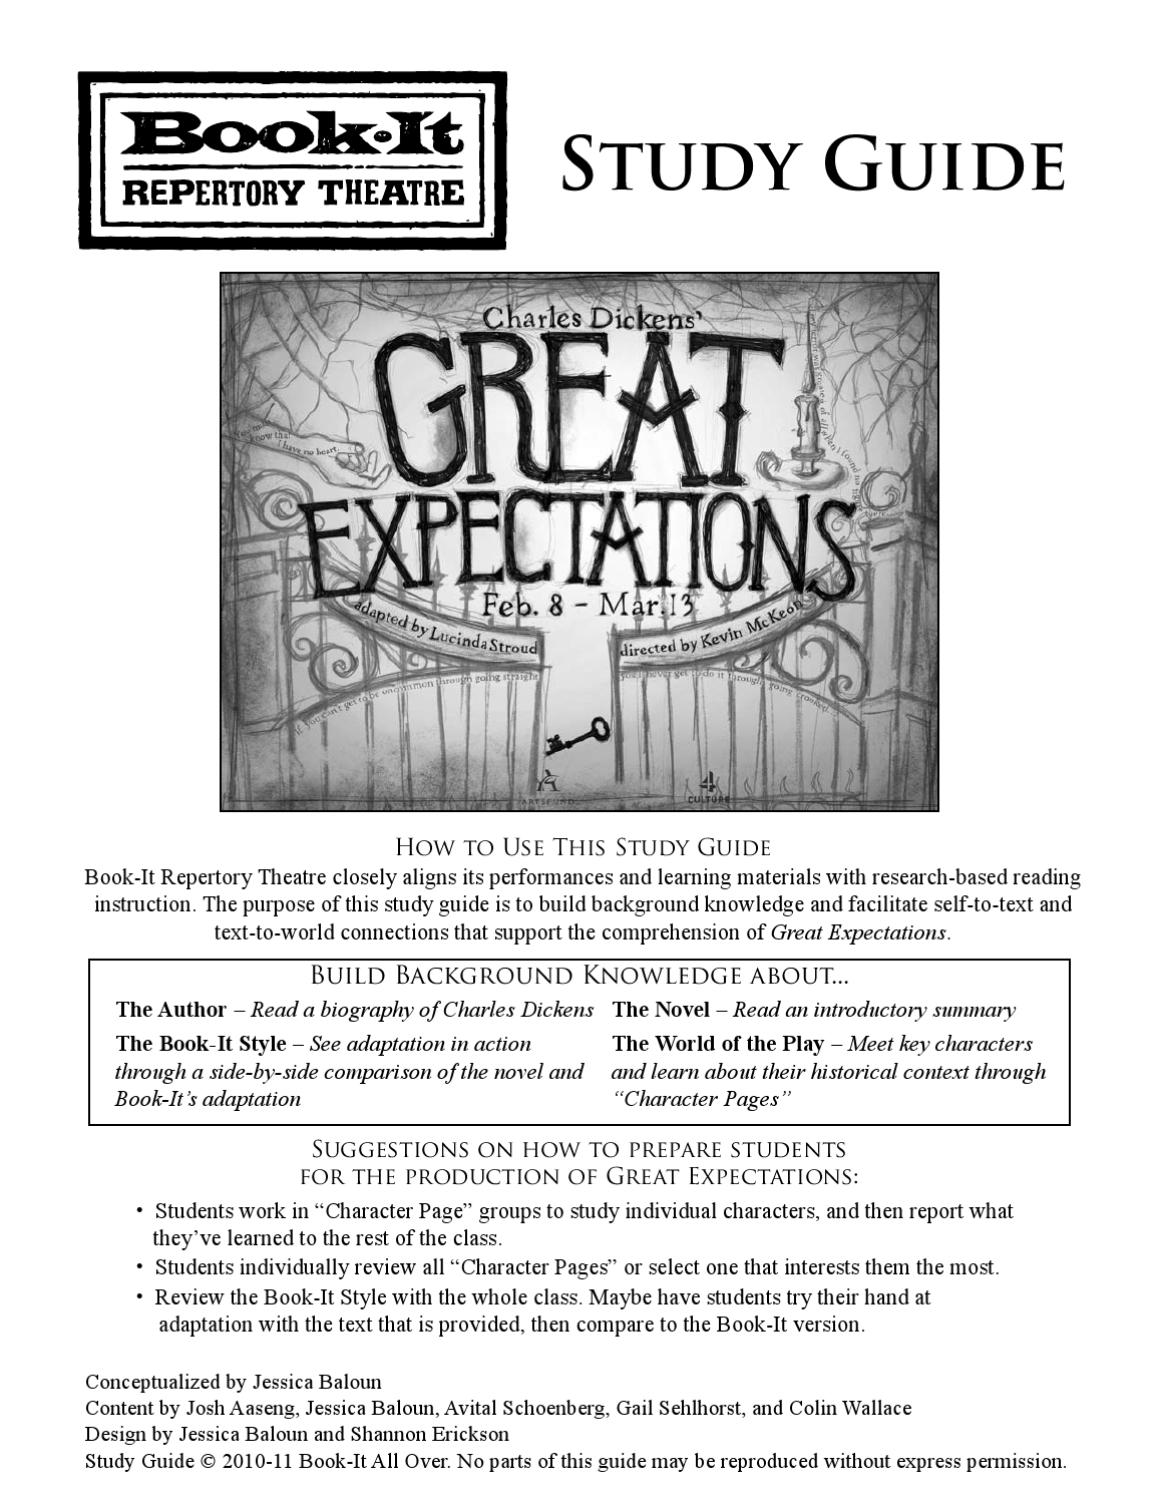 an analysis of societal classes in great expectations a novel by charles dickens What role does social class play in the novel great expectations what lesson   his experiencegreat expectations reveal dickens's dark attitu.